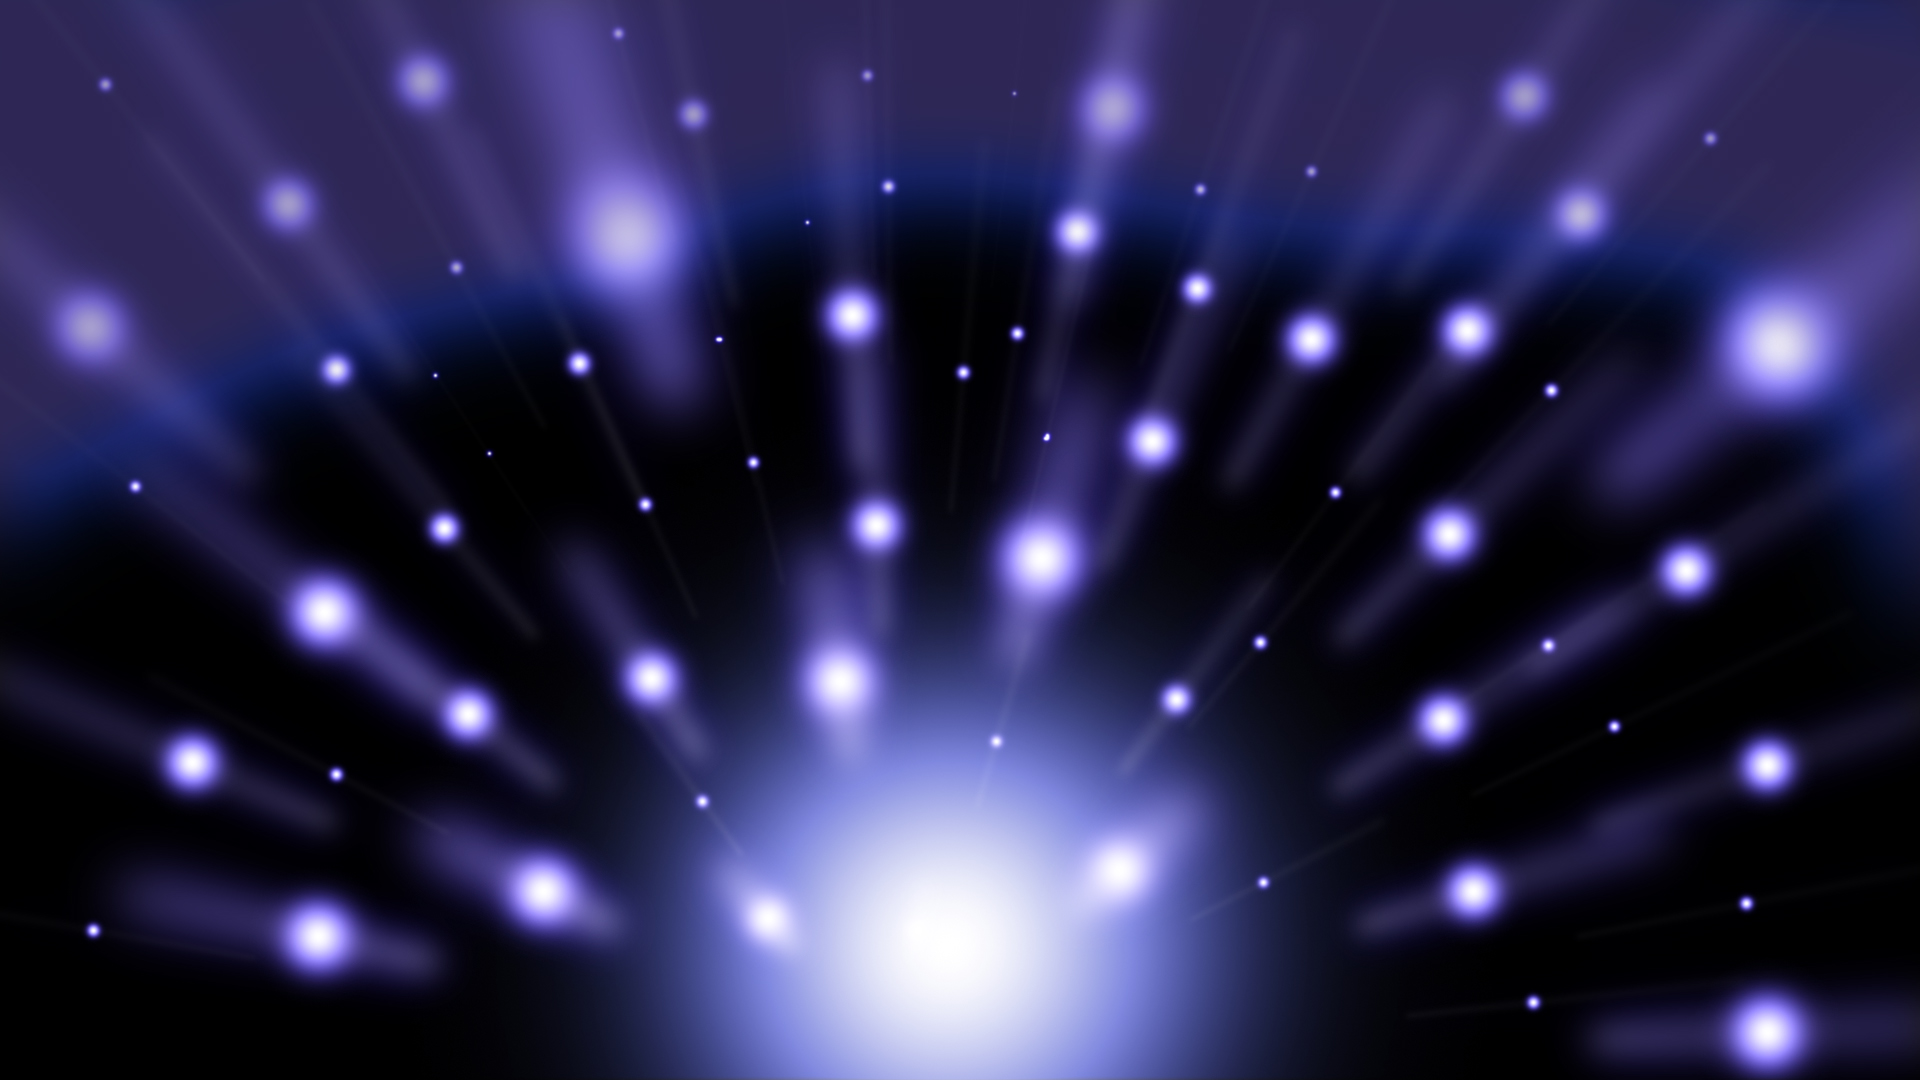 blue star background - photo #35